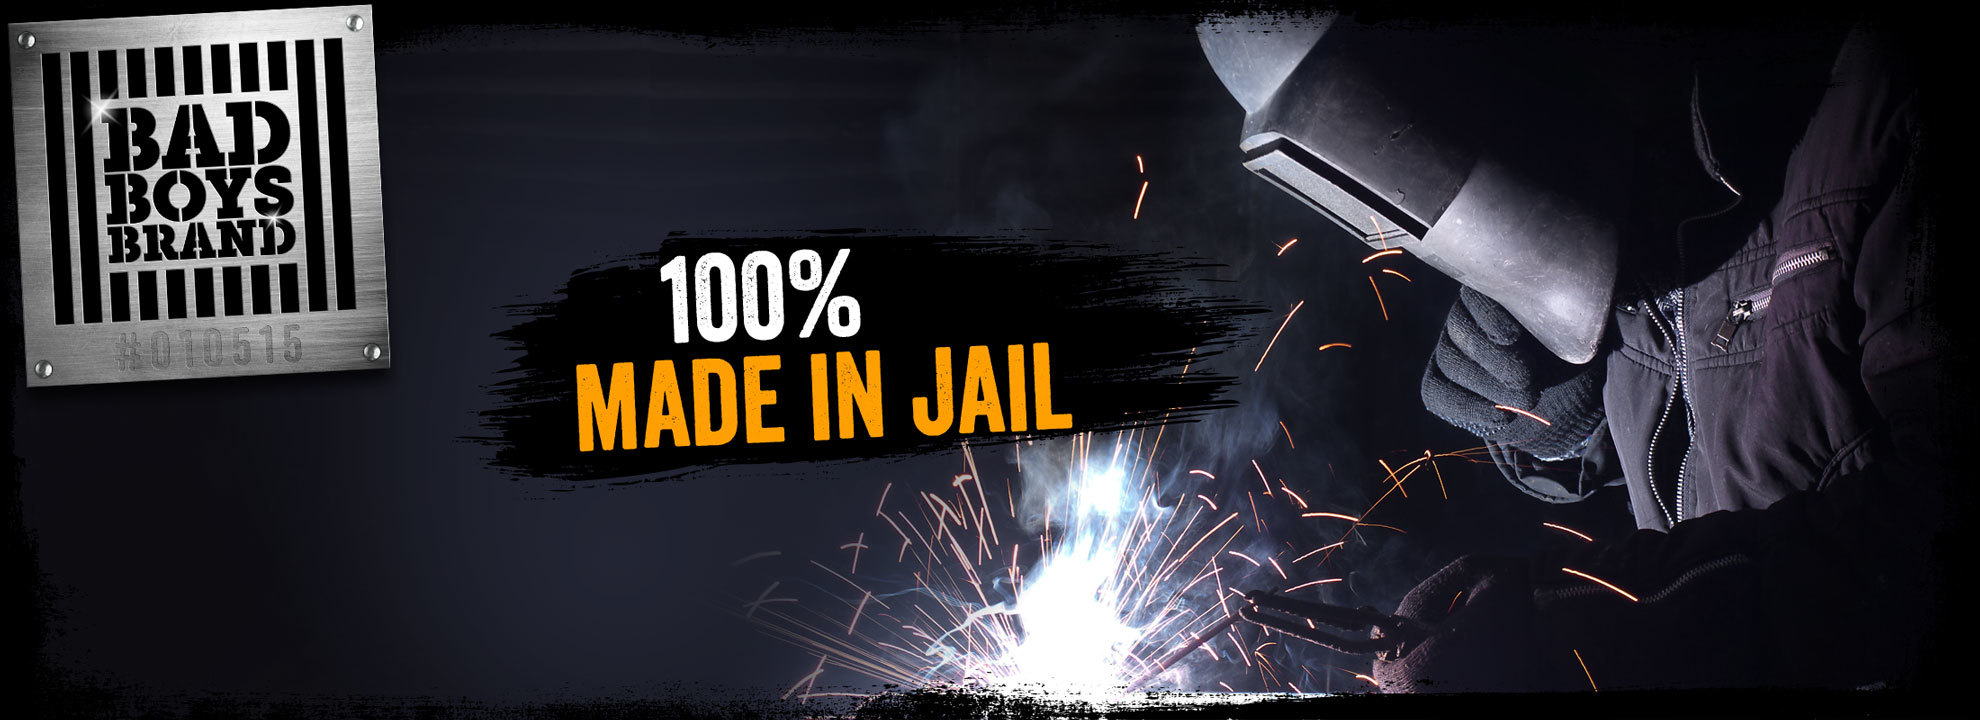 100% Made in Jail